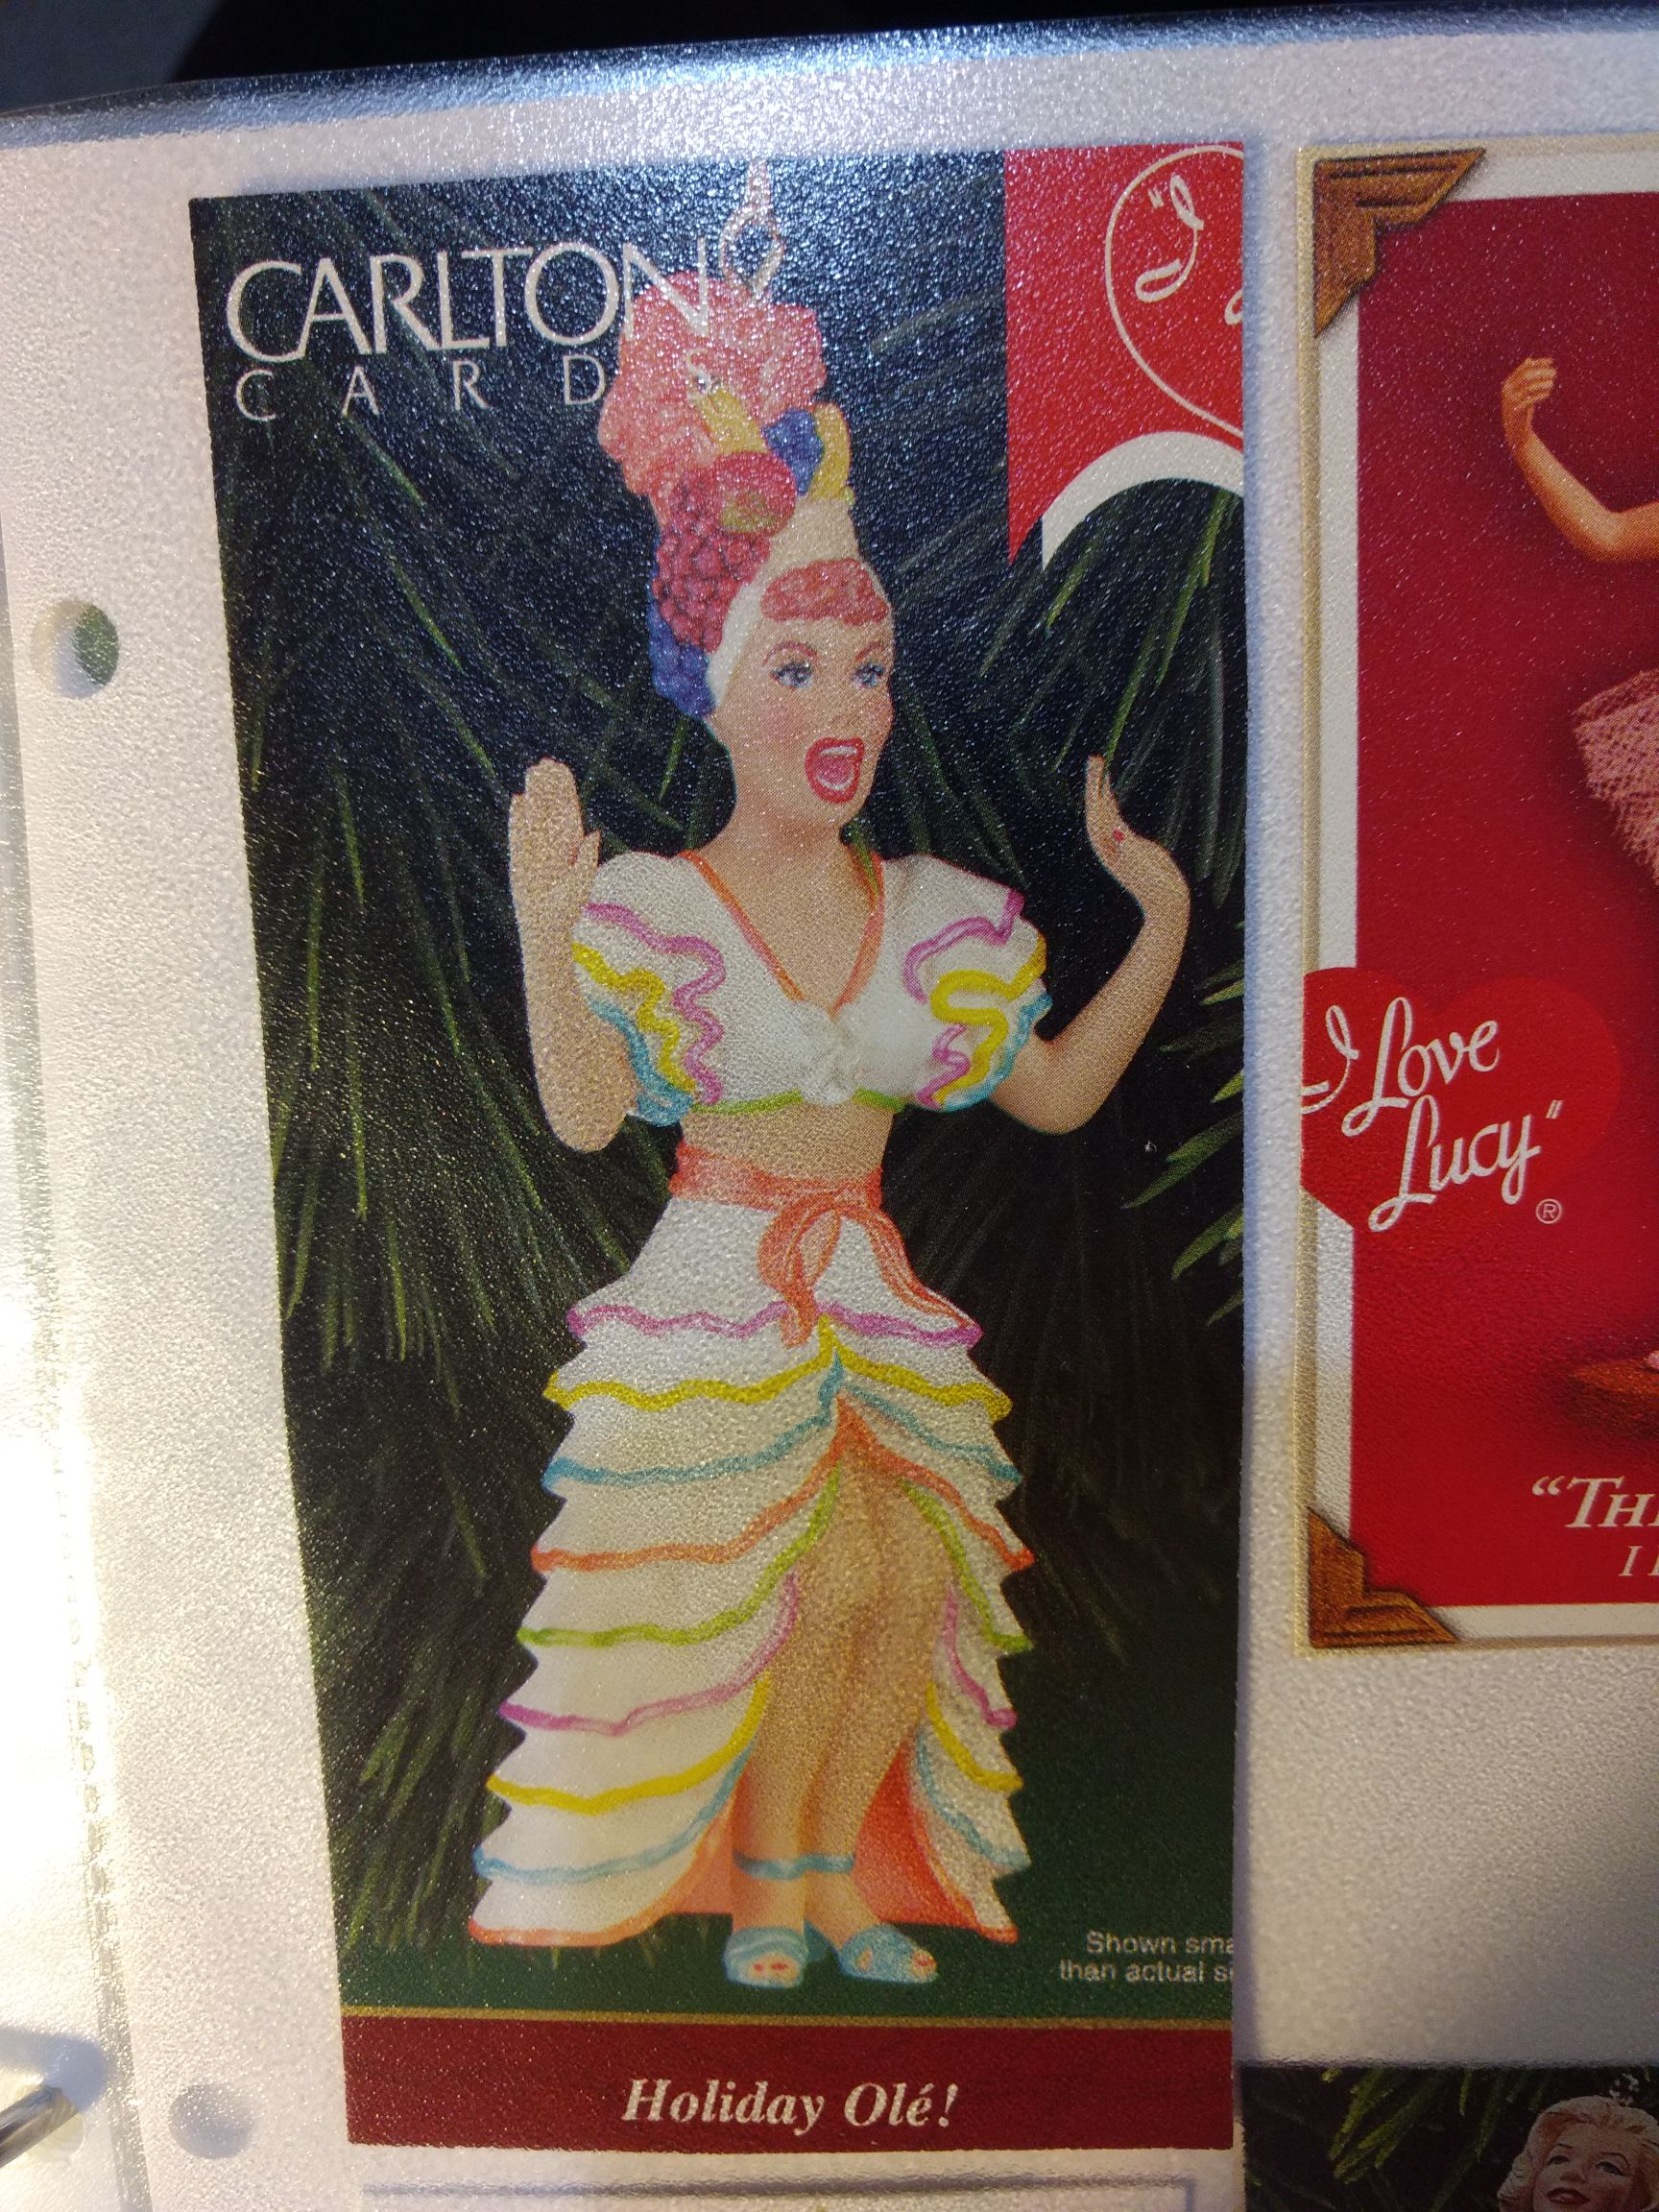 I Love Lucy - Holiday Ole Ornament - Carlton Cards front image (front cover)